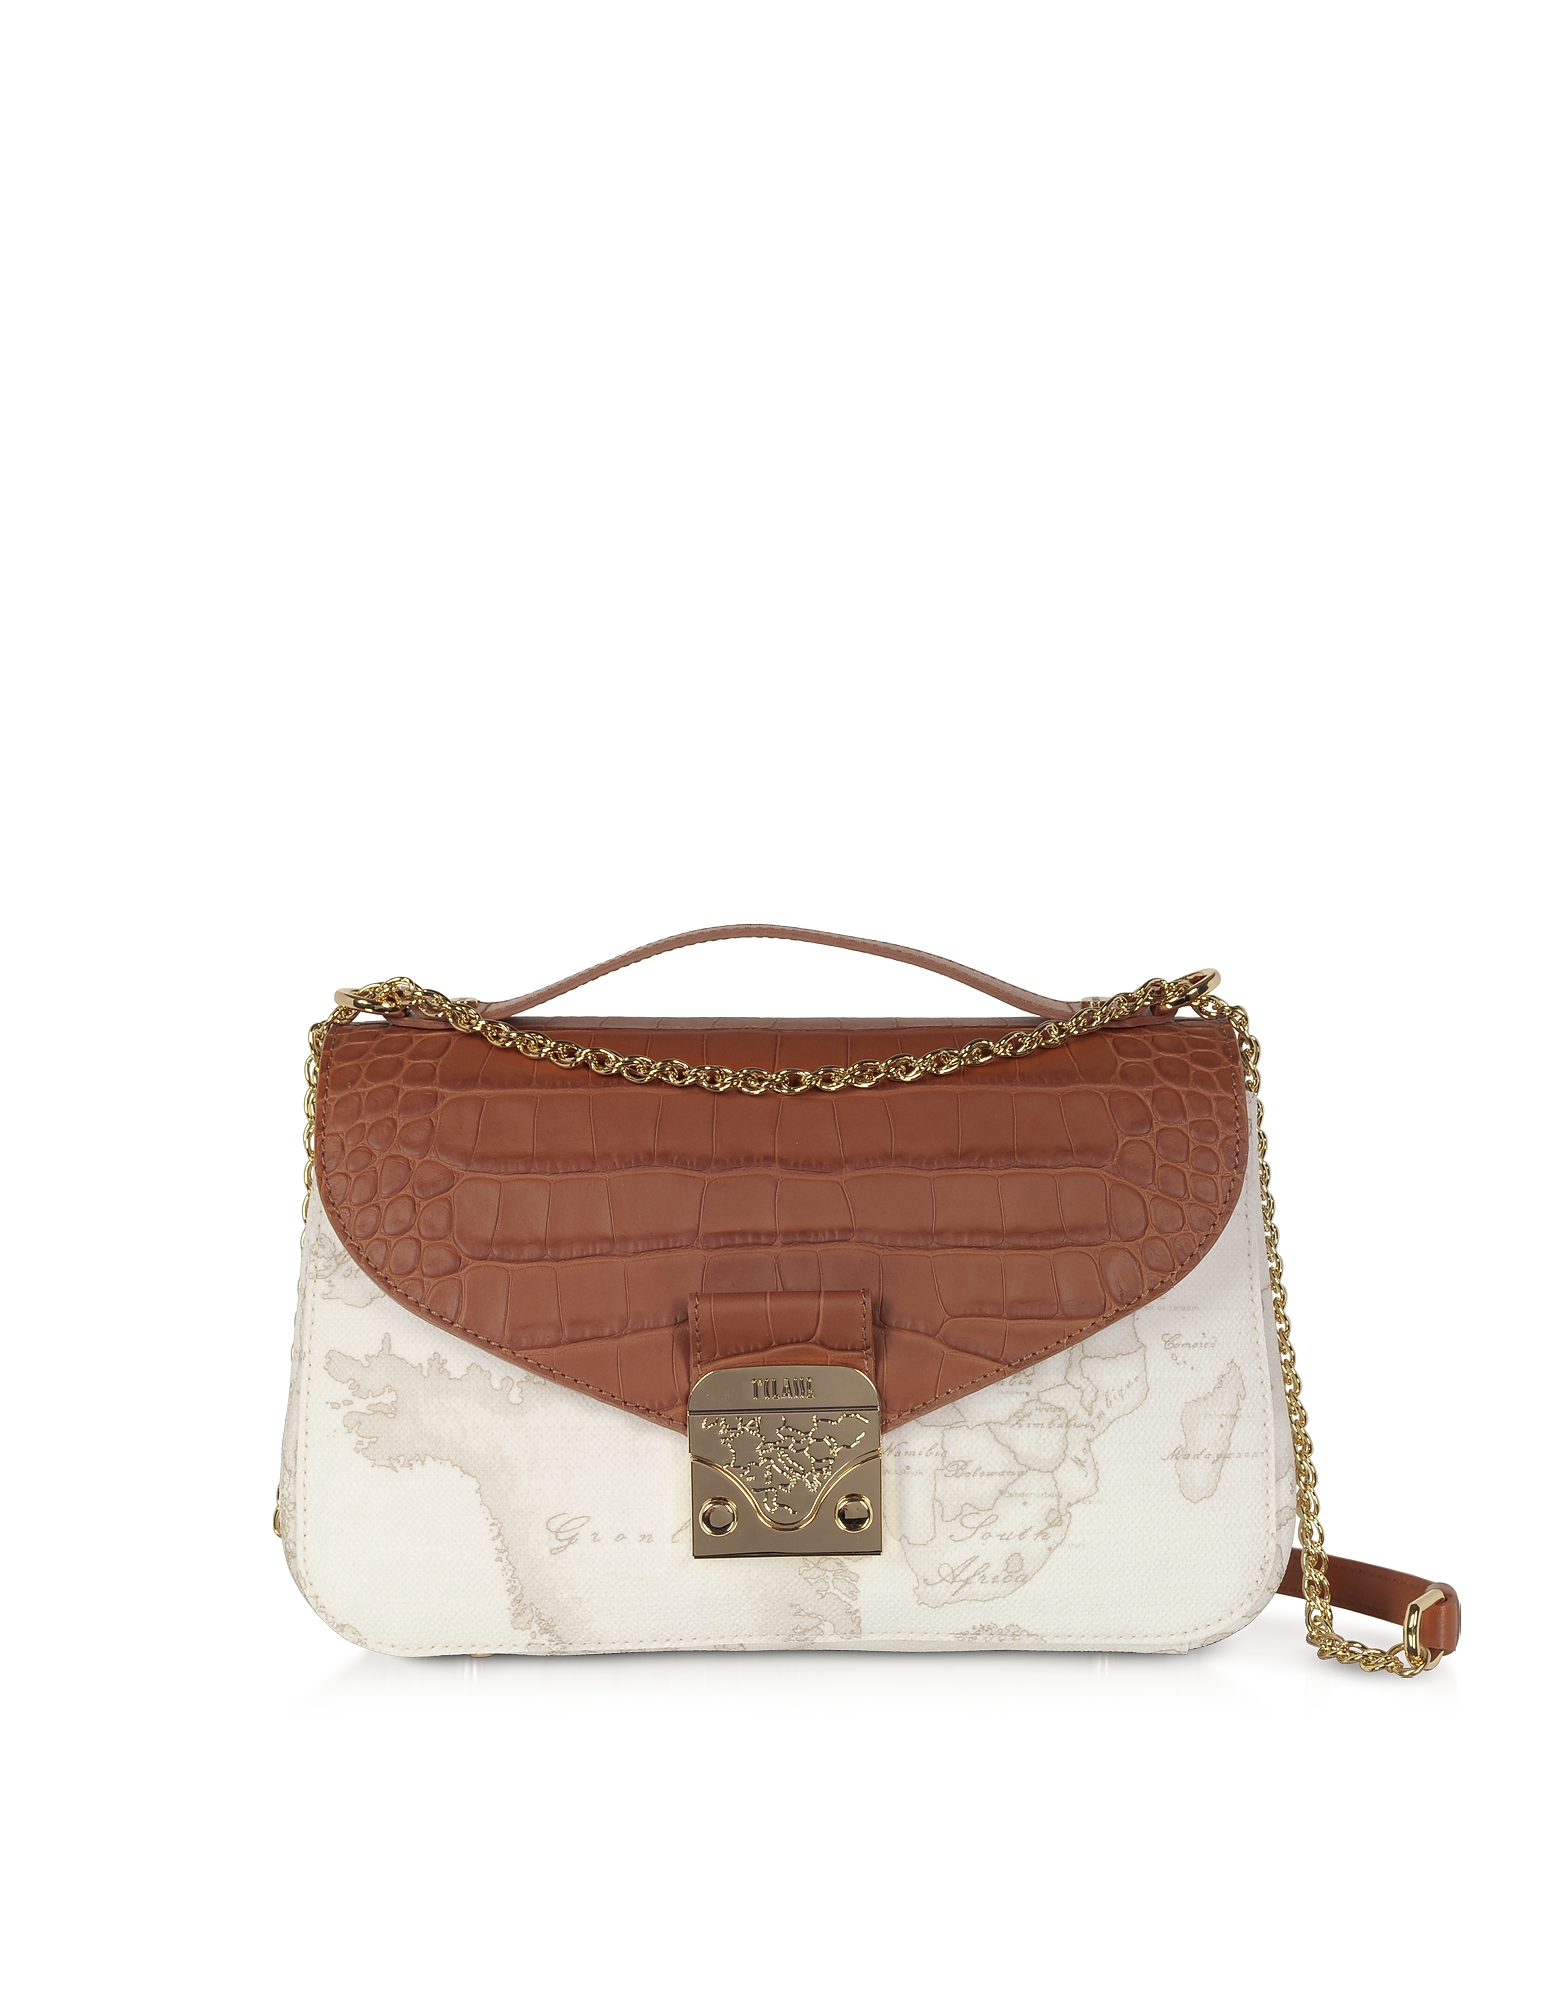 Alviero Martini 1a Classe Jolie White Coated Canvas & Embossed Croco Leather Shoulder Bag